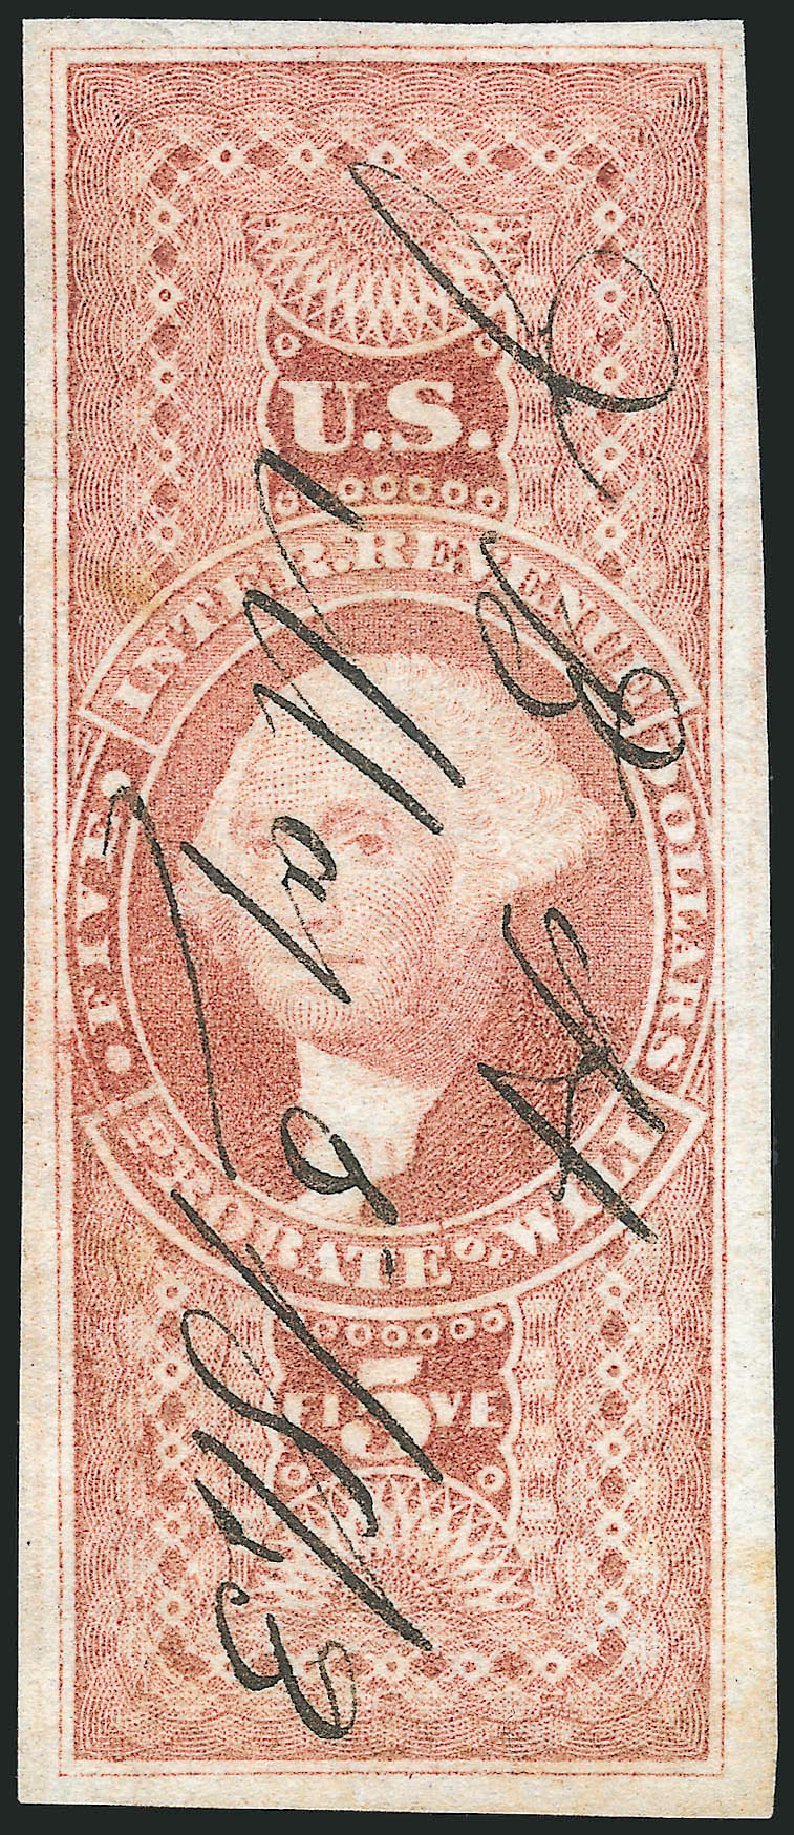 Prices of US Stamps Scott Catalog # R92 - 1862 US$5.00 Revenue Probate of Will. Robert Siegel Auction Galleries, Mar 2014, Sale 1066, Lot 33